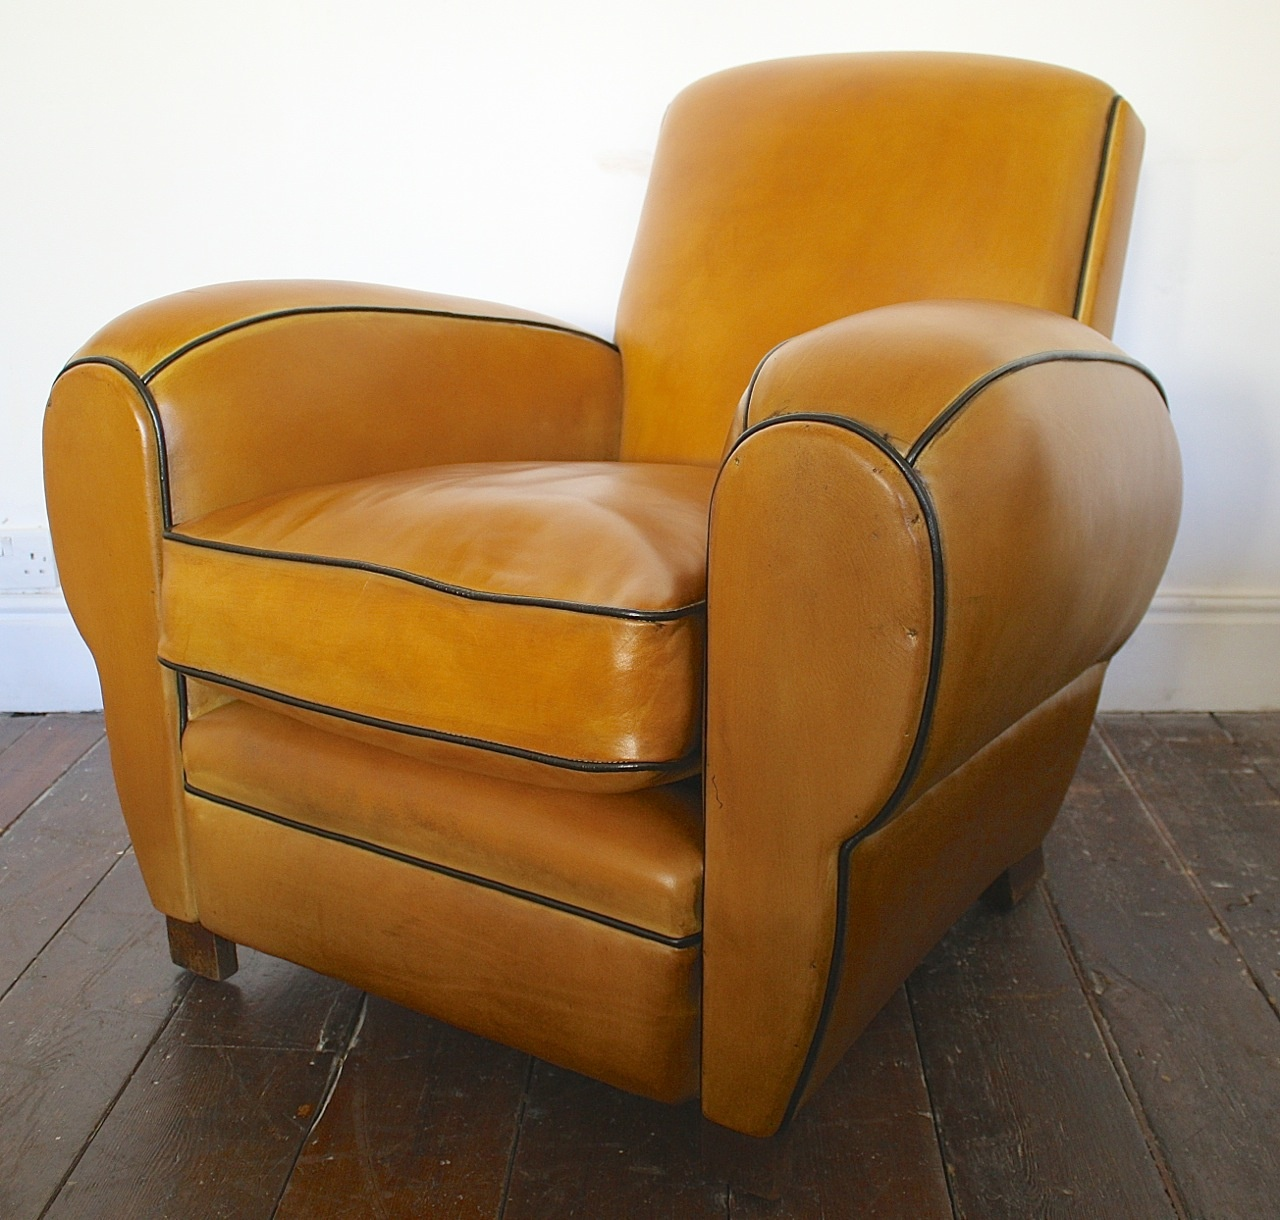 leather chairs of bath bunjo bungee chair academy antique french cigar